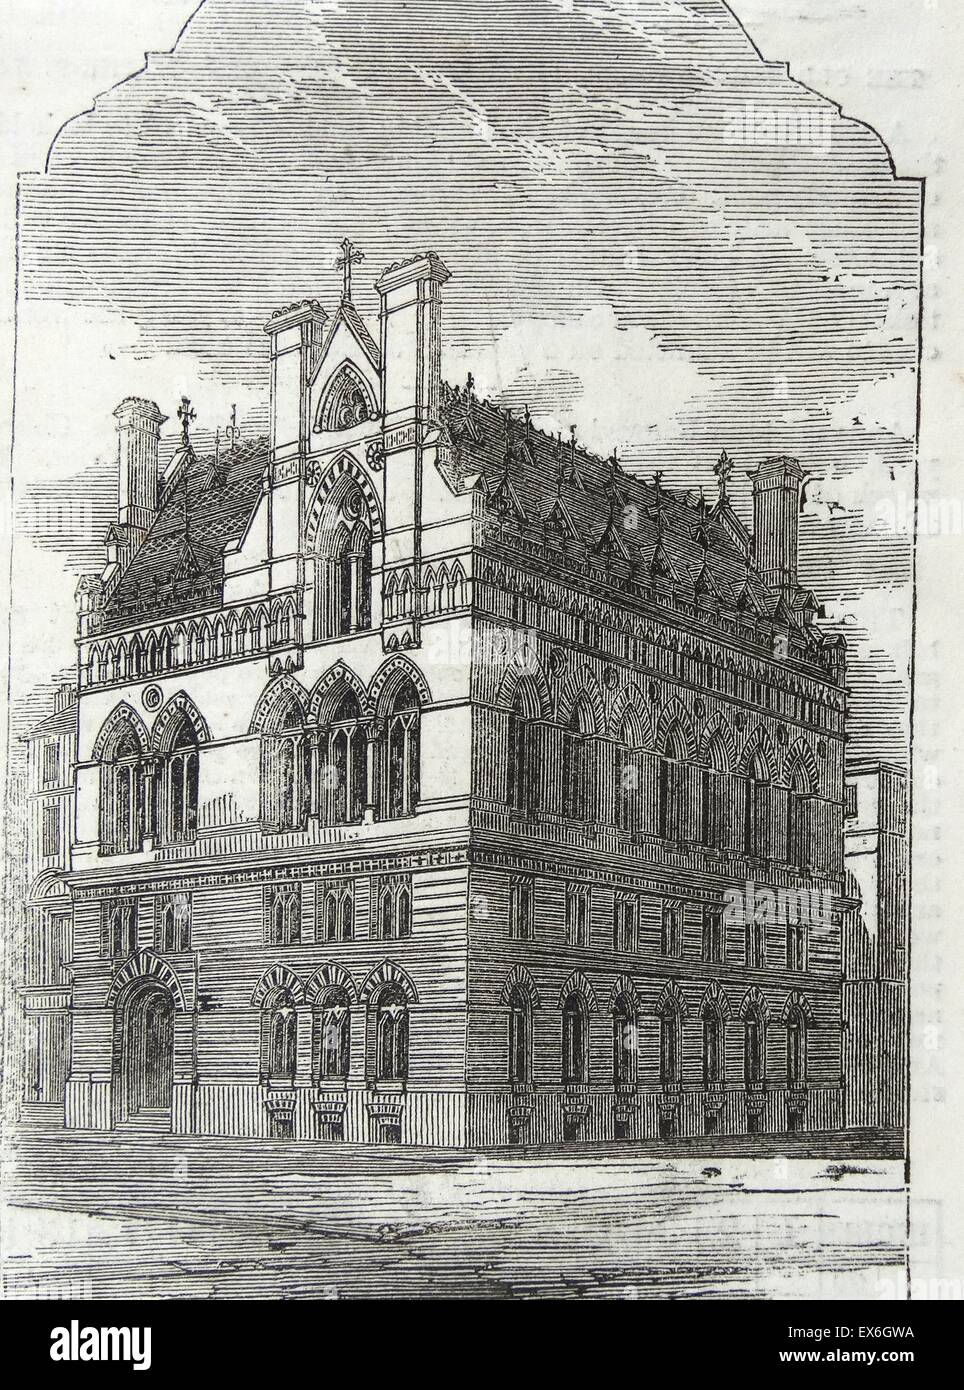 Engraving of the exterior of the National School, St. Giles'-in-the-Fields. Dated 1860 - Stock Image